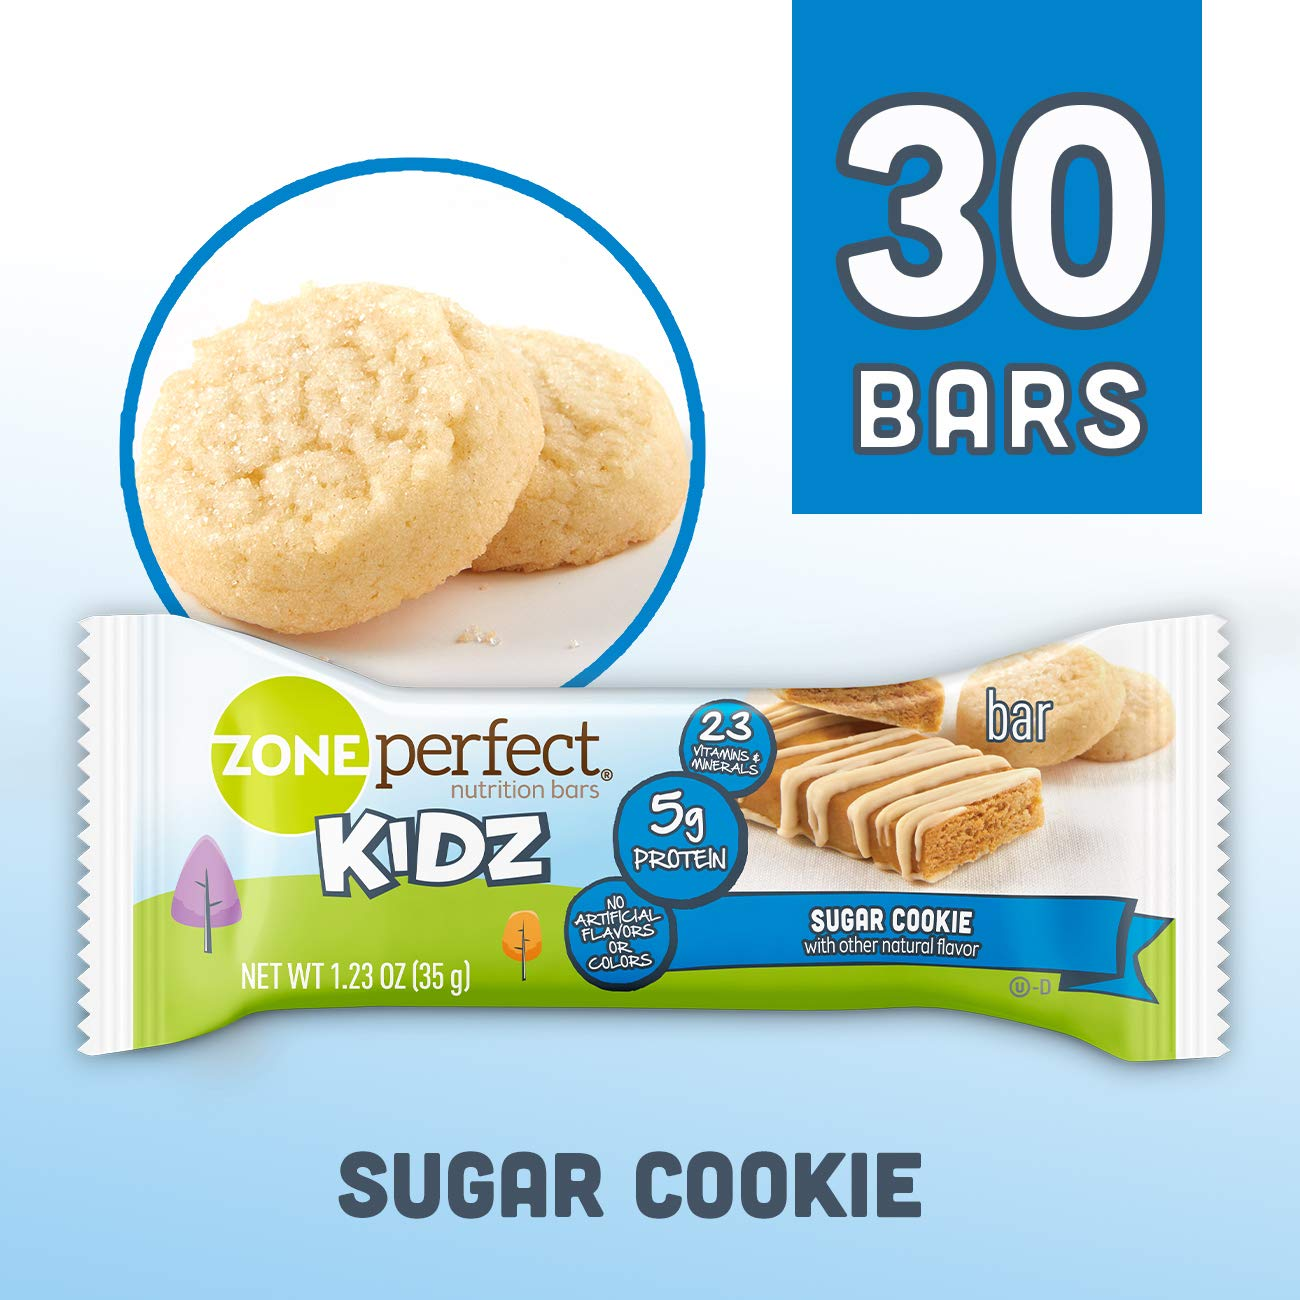 ZonePerfect Kidz Nutrition Bars, No Artificial Flavors or Colors, Sugar Cookie